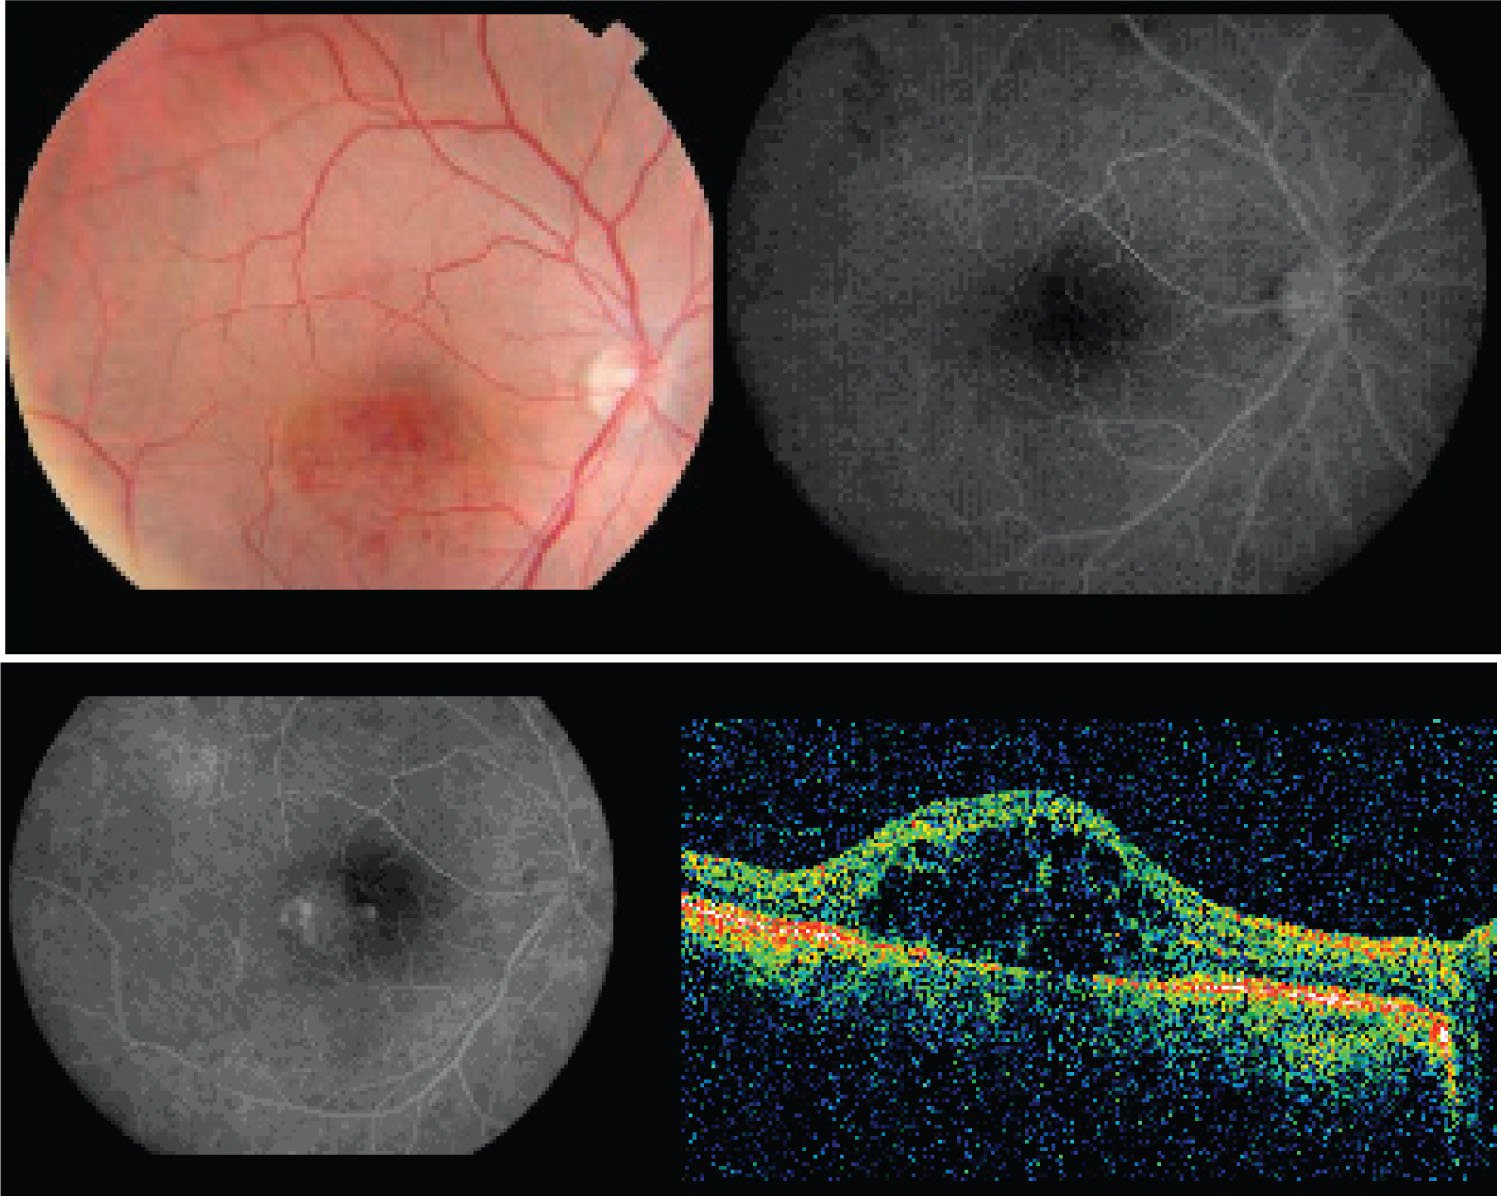 Colour Fundus Photograph, Fluorescein Angiography and OCT of the Right Eye Before Treatment. The Abnormal Vessels Show Fluorescence Capping and Leakage in the Macula. OCT Confirmed Retinal Elevation Caused by the Tumoral Tissue. Visual Acuity was 20/400.